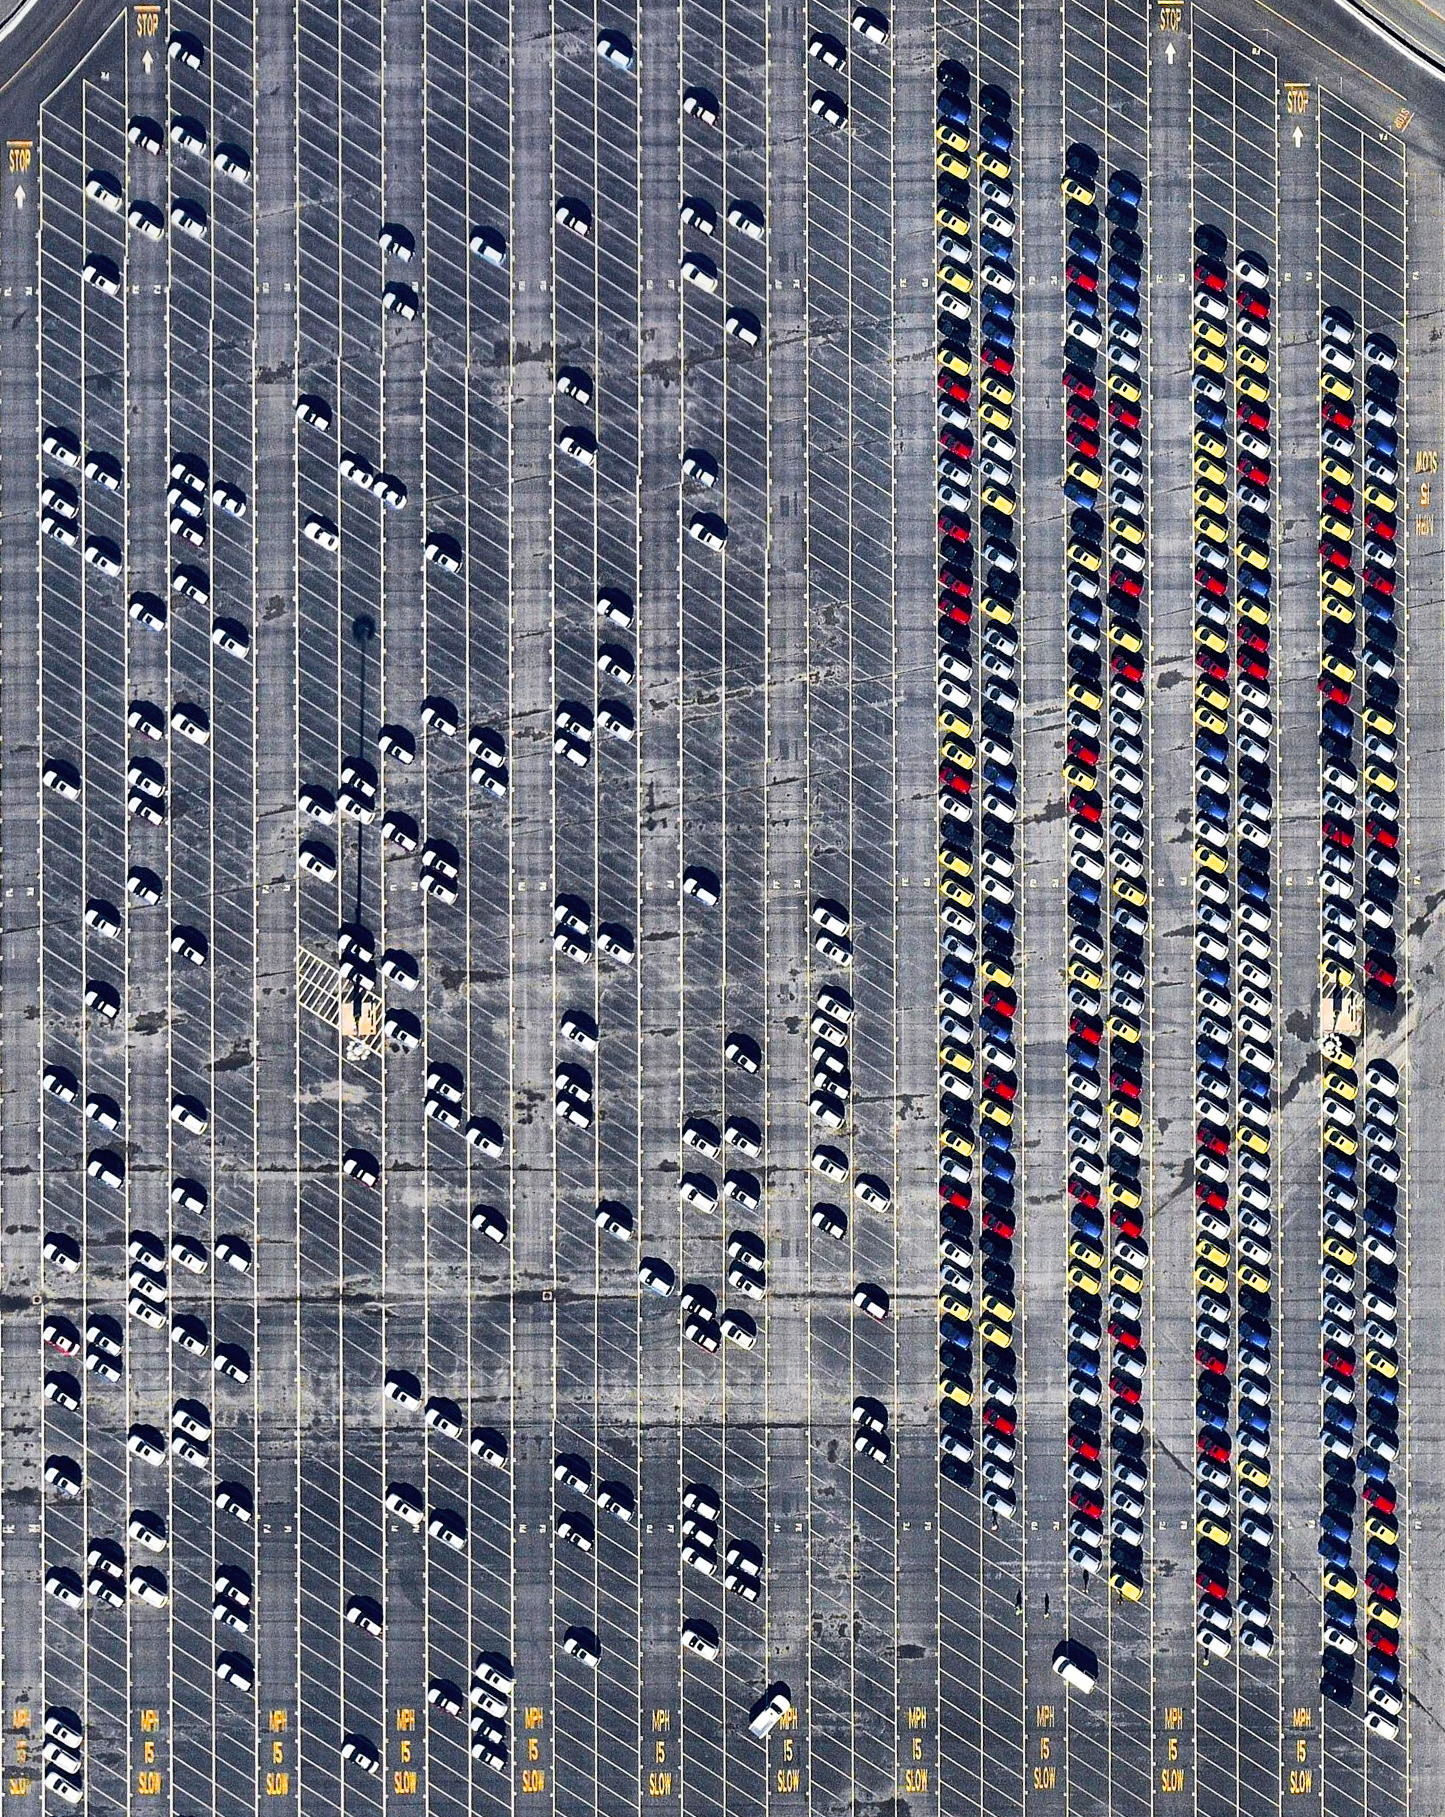 10/6/2016   Car terminal   Richmond, California, USA  37.9137118, -122.368161    Cars are unloaded and parked at an automobile terminal in Richmond, California, USA. In 2015, 17.5 million cars and light trucks were sold in the United States, raising the total number of registered vehicles in the country to roughly 253 million.  Source imagery: Nearmap